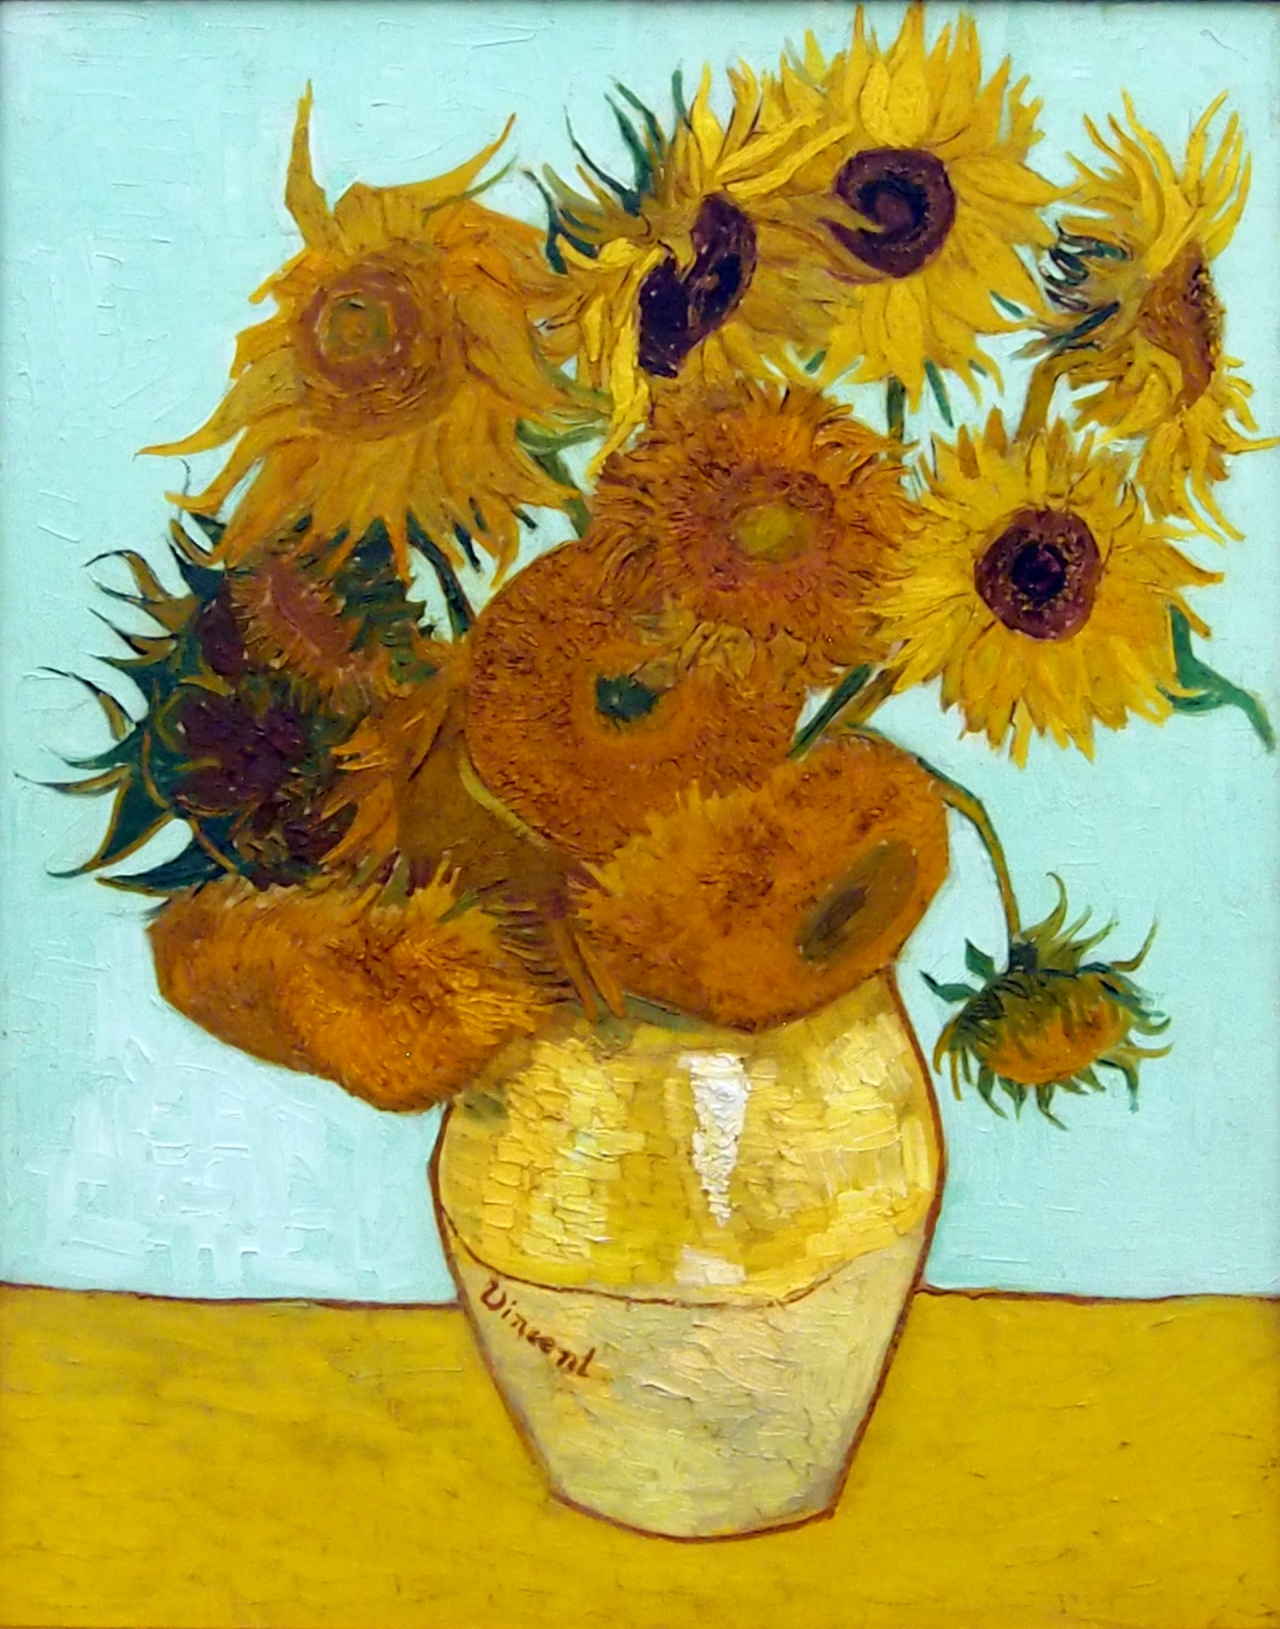 Van Gogh s Sunflowers 1888, from the Neue Pinakothek museum in Munich